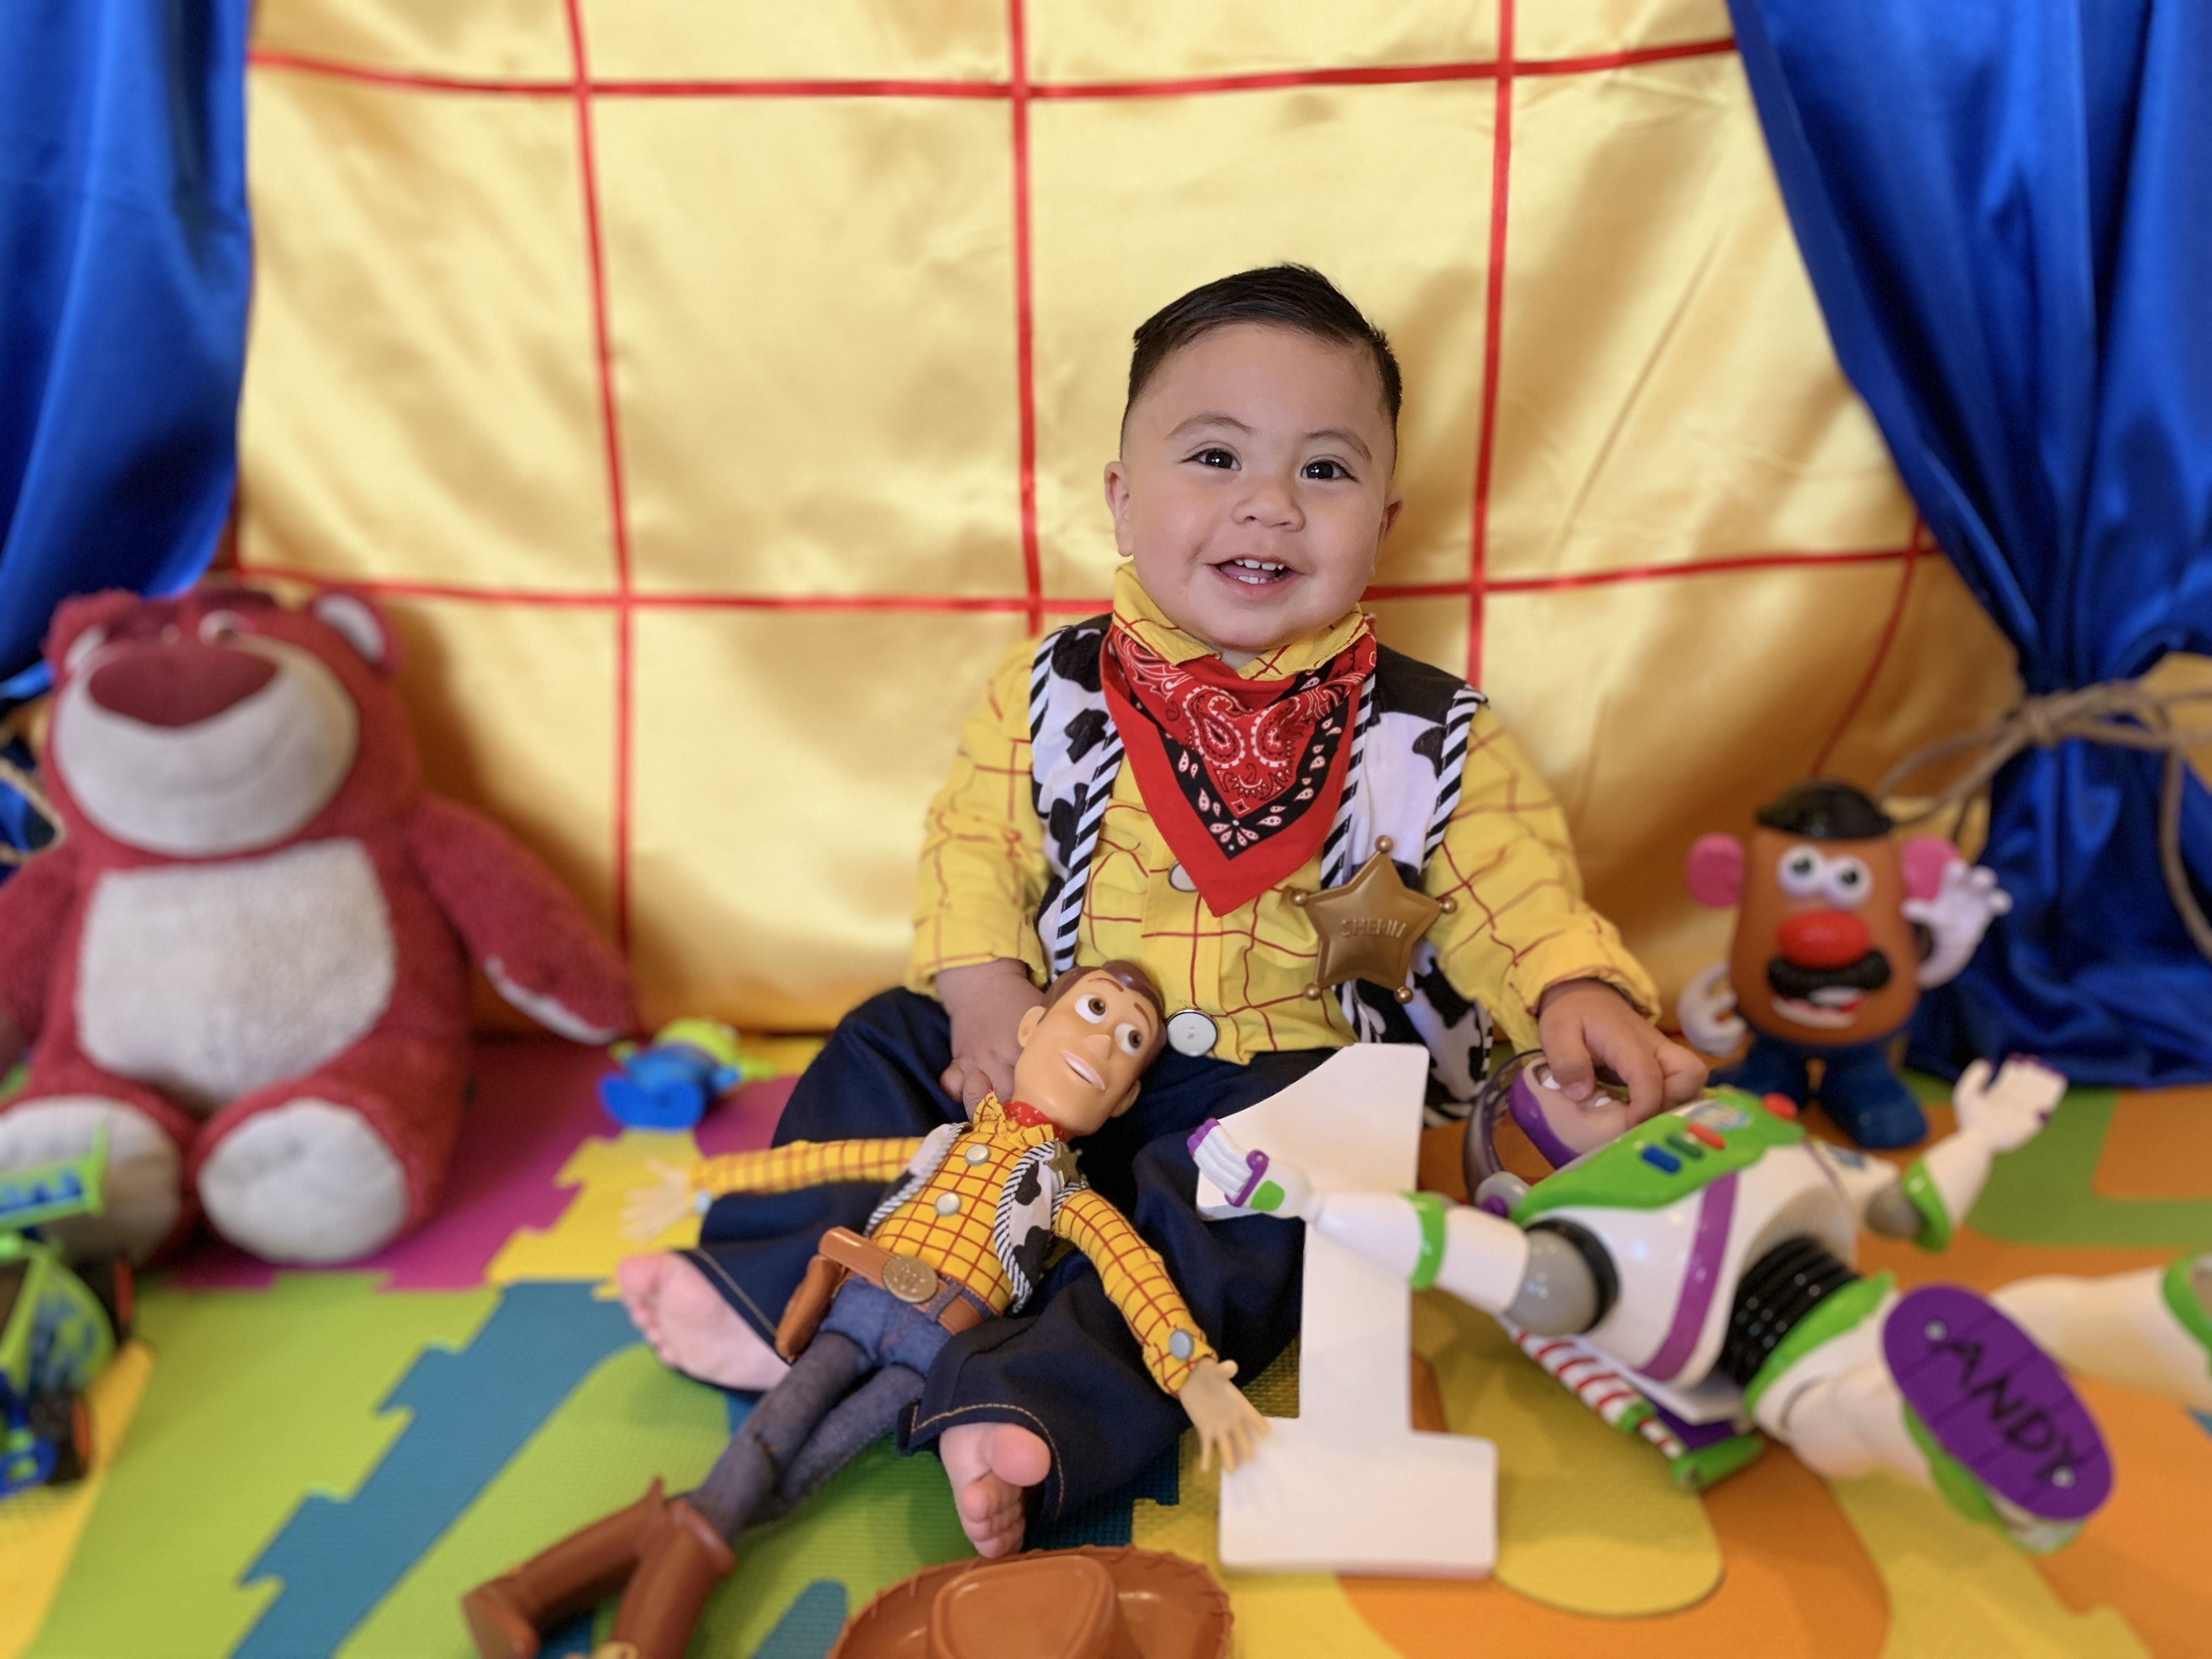 Pin by Marissa Barajas on Toy Story birthday party Toy